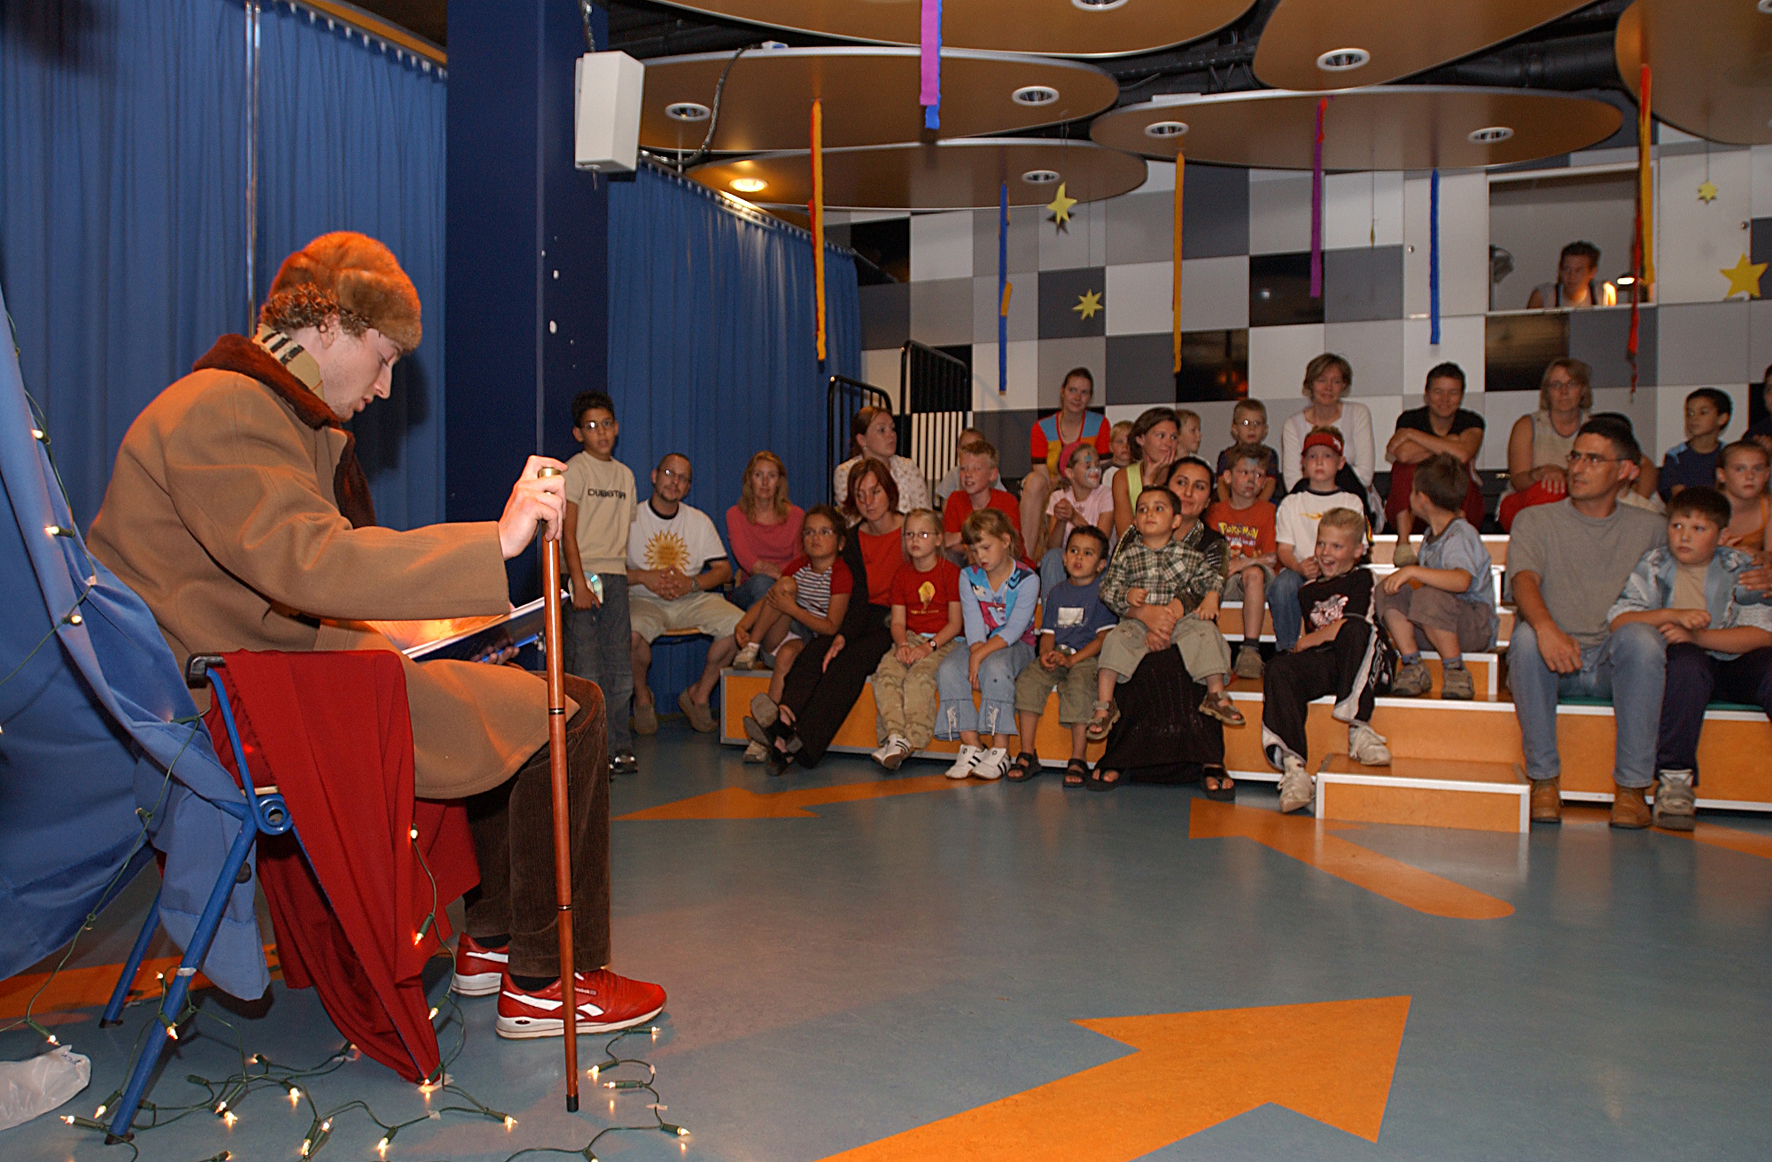 kindertheater-voorstelling